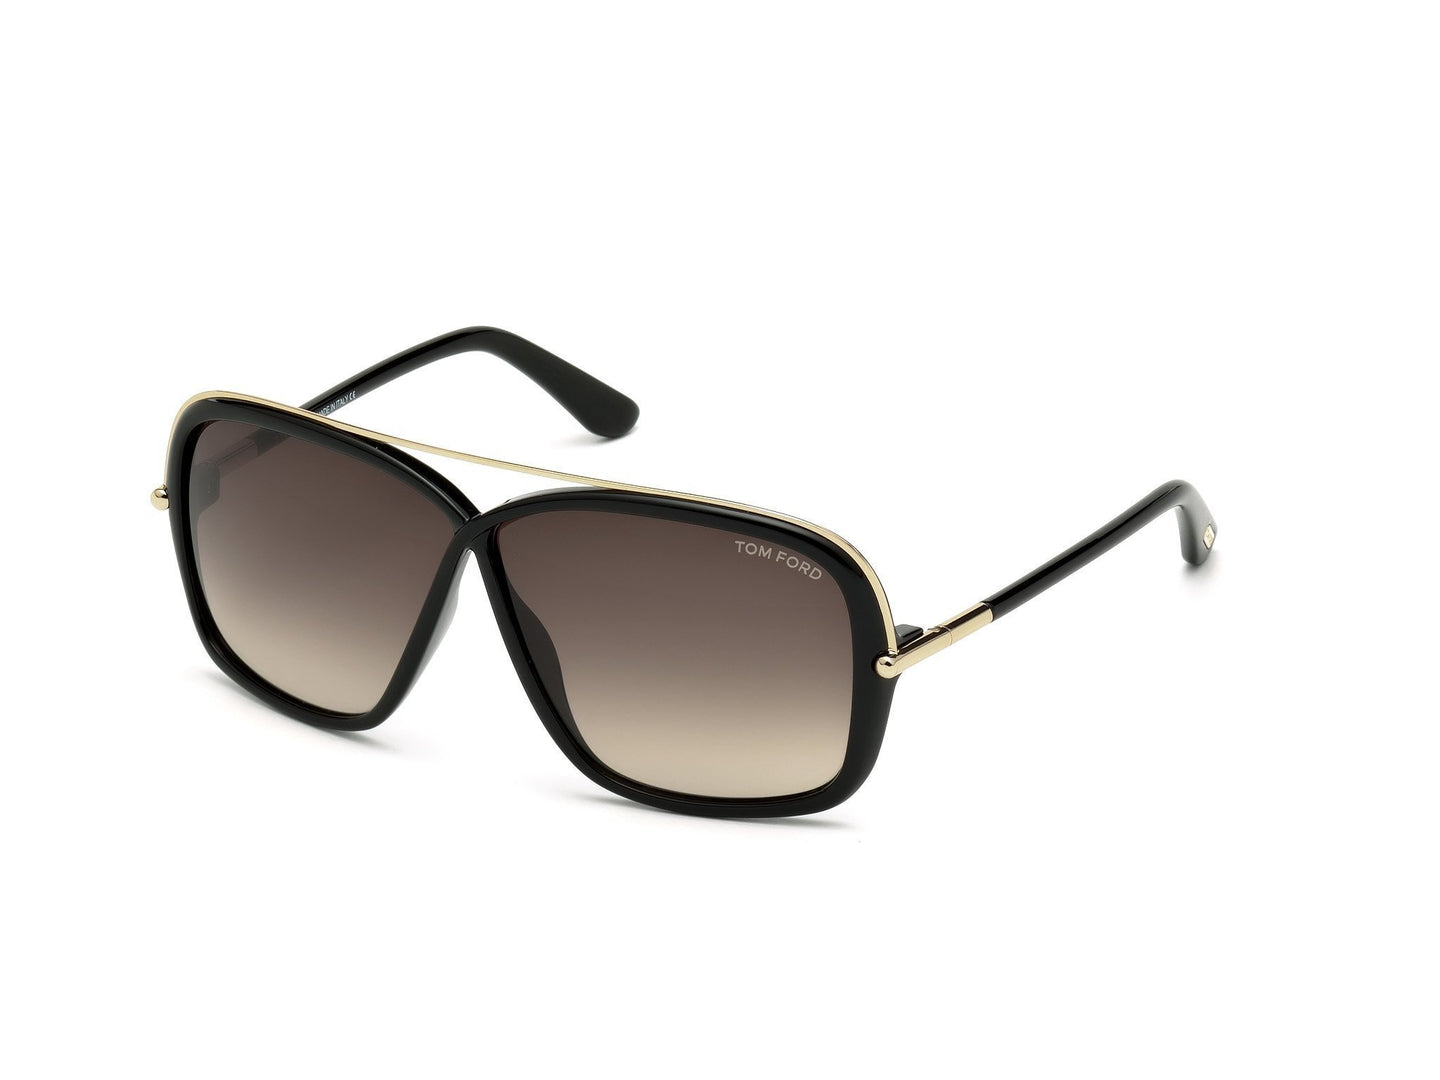 Tom Ford Sunglass-FT0455